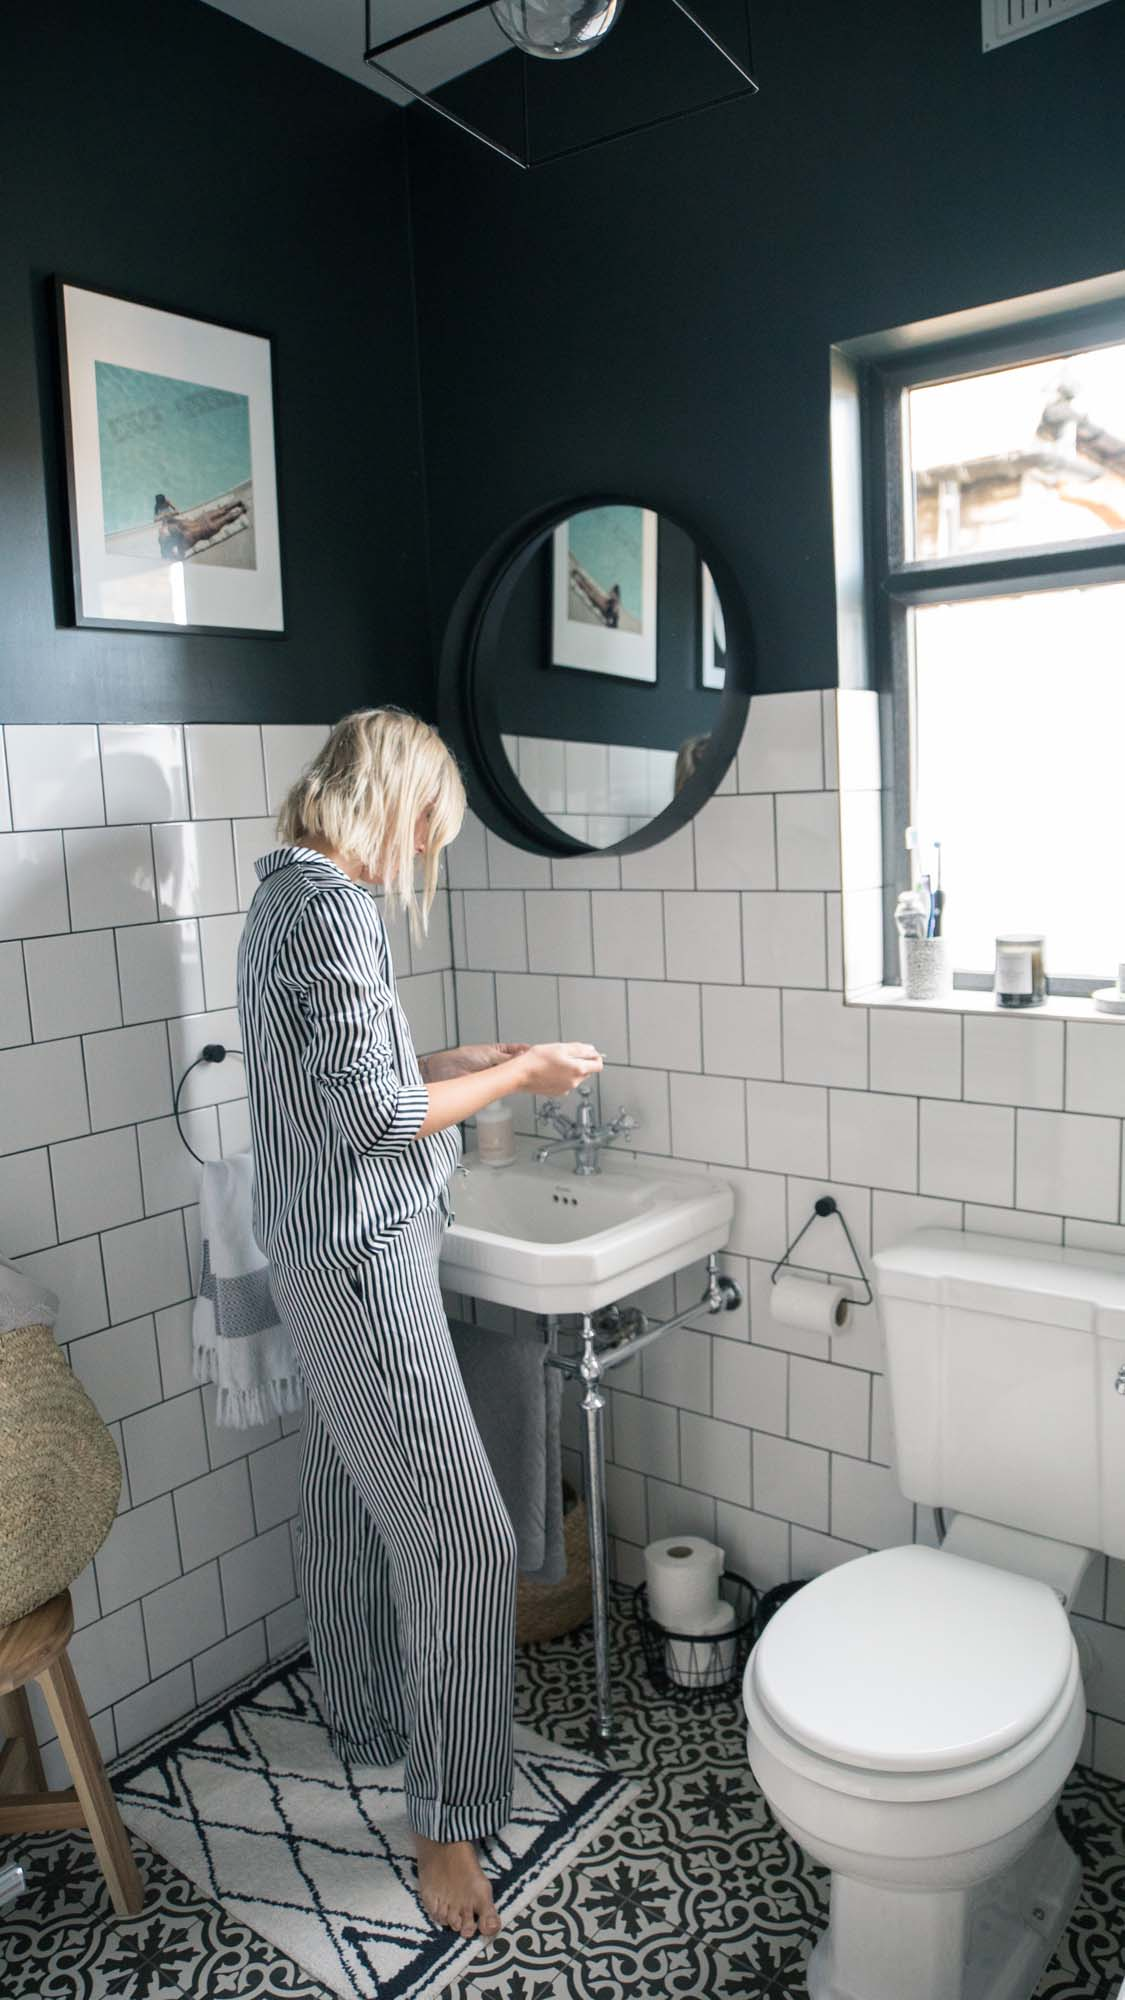 Alex rocking monochrome PJs in her monochrome bathroom